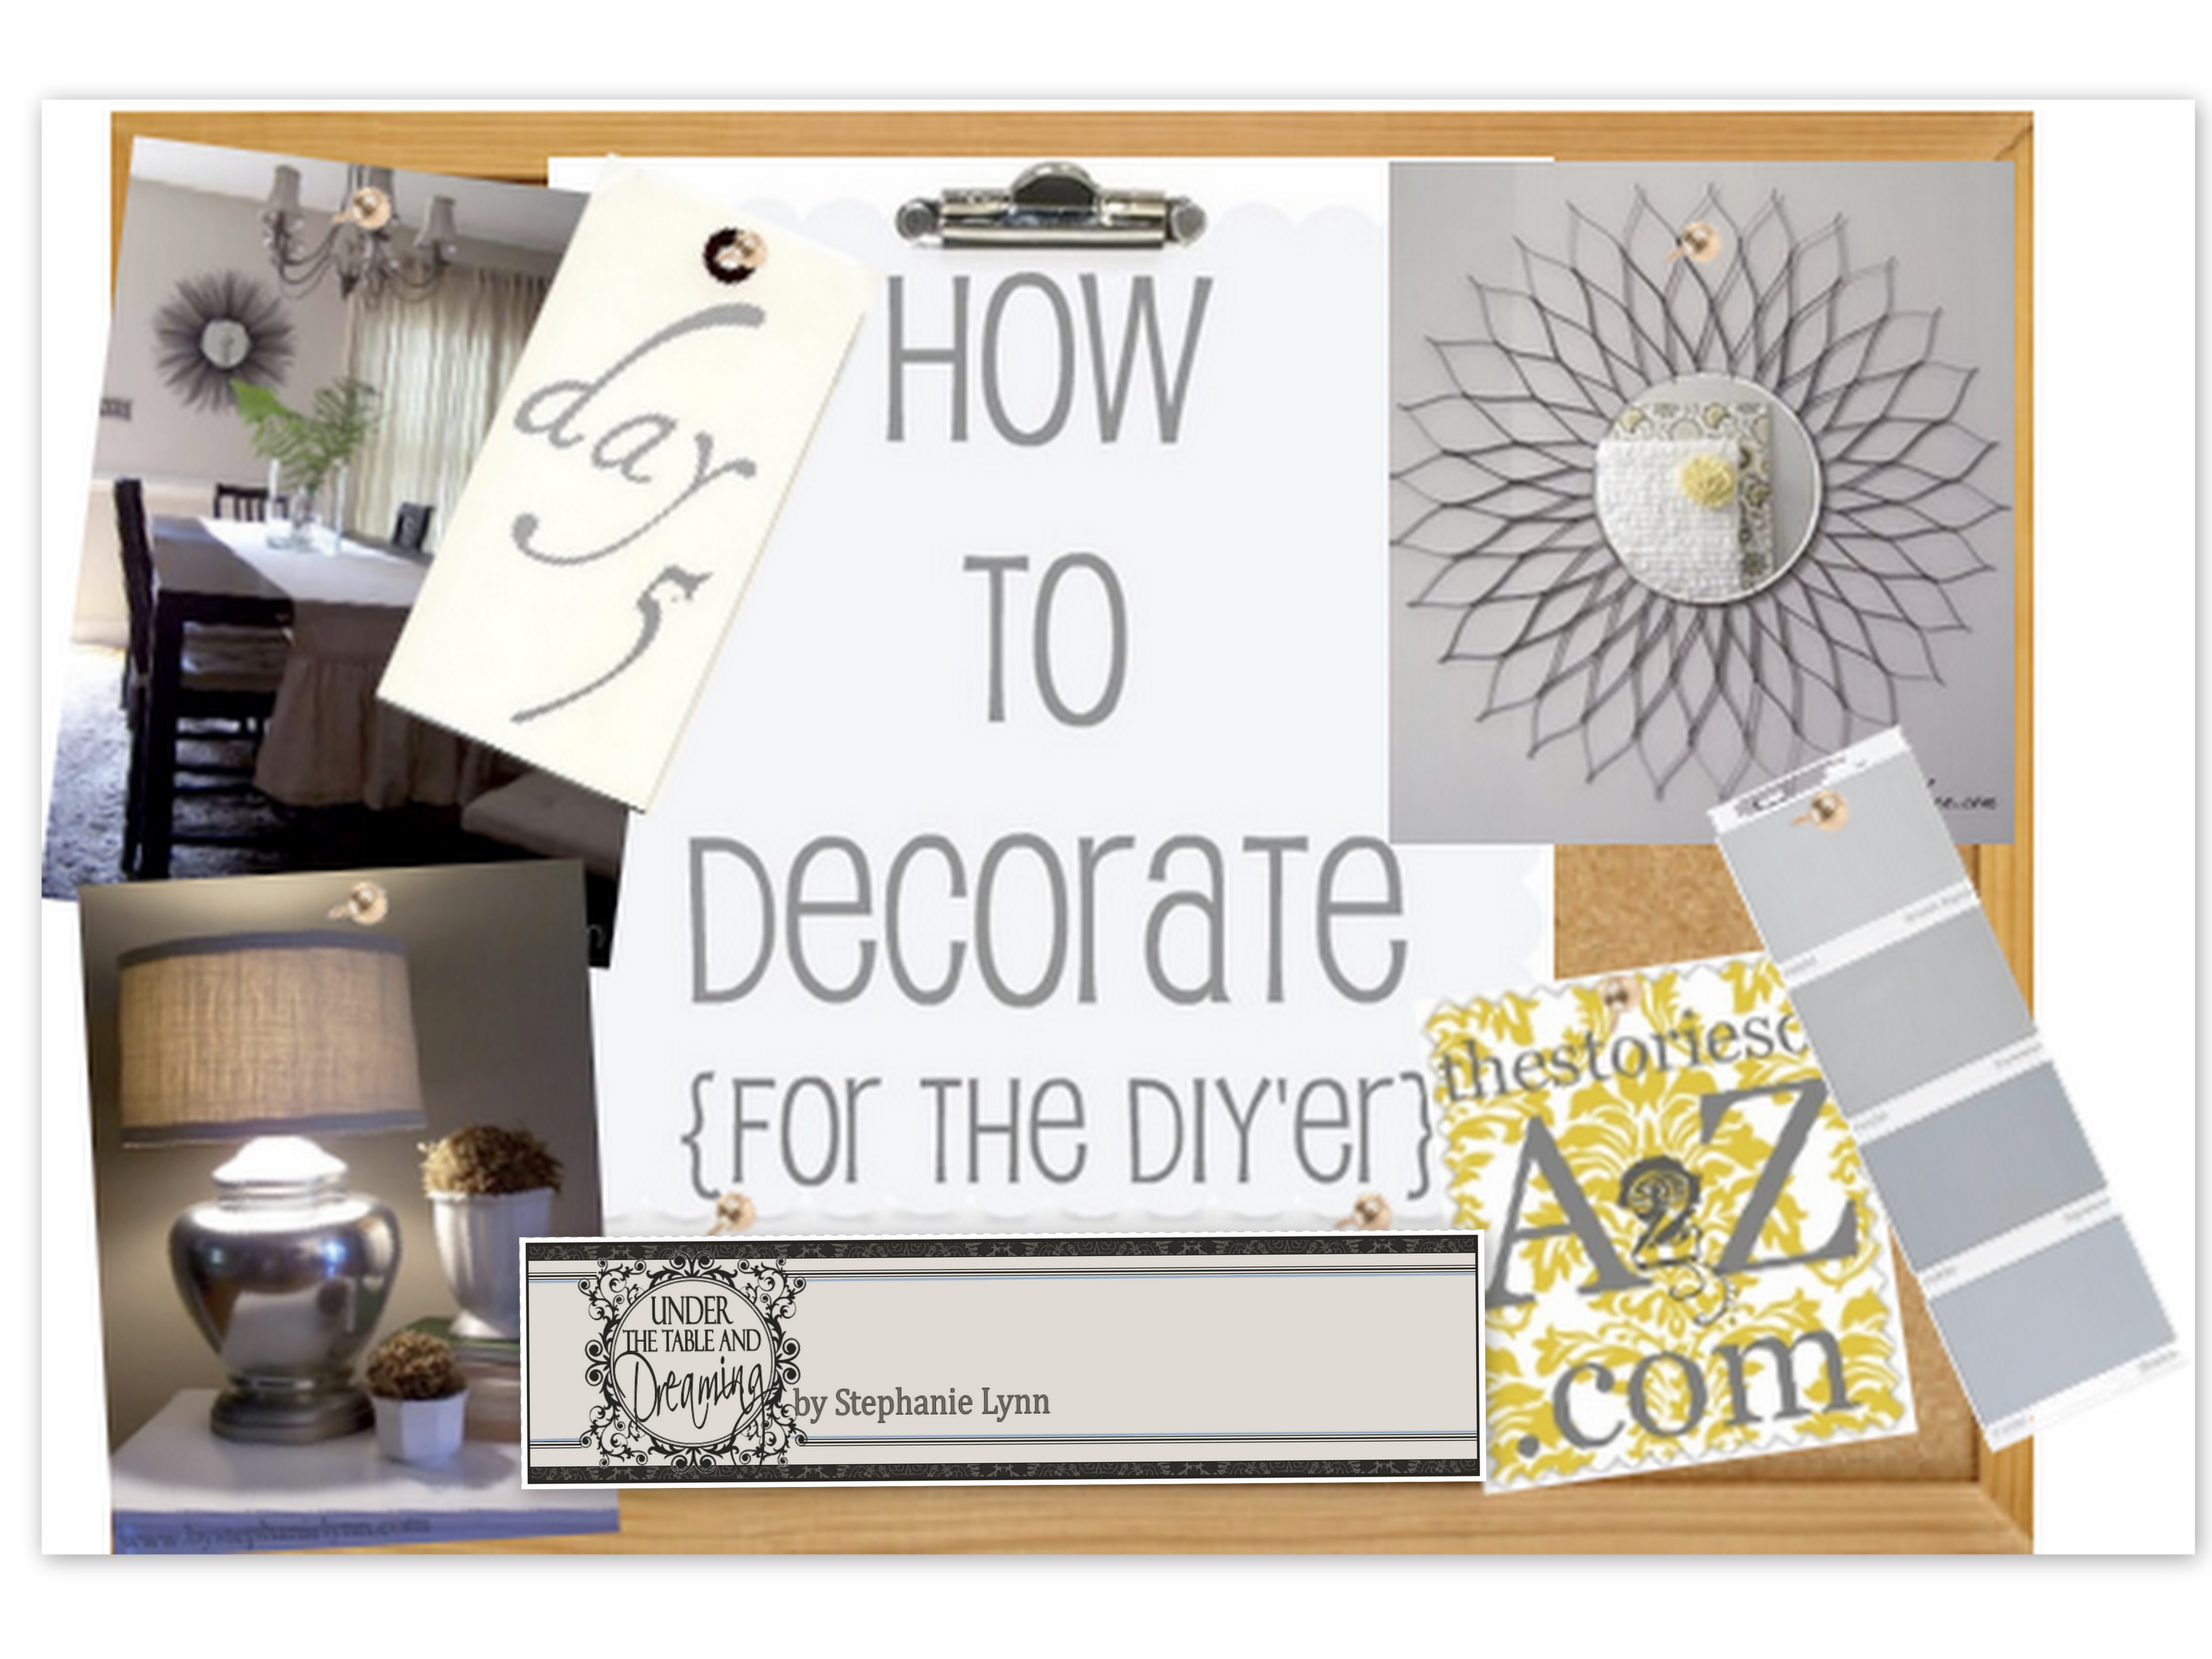 How to decorate series day 5 4 practical tips by under - How to decorate my home ...